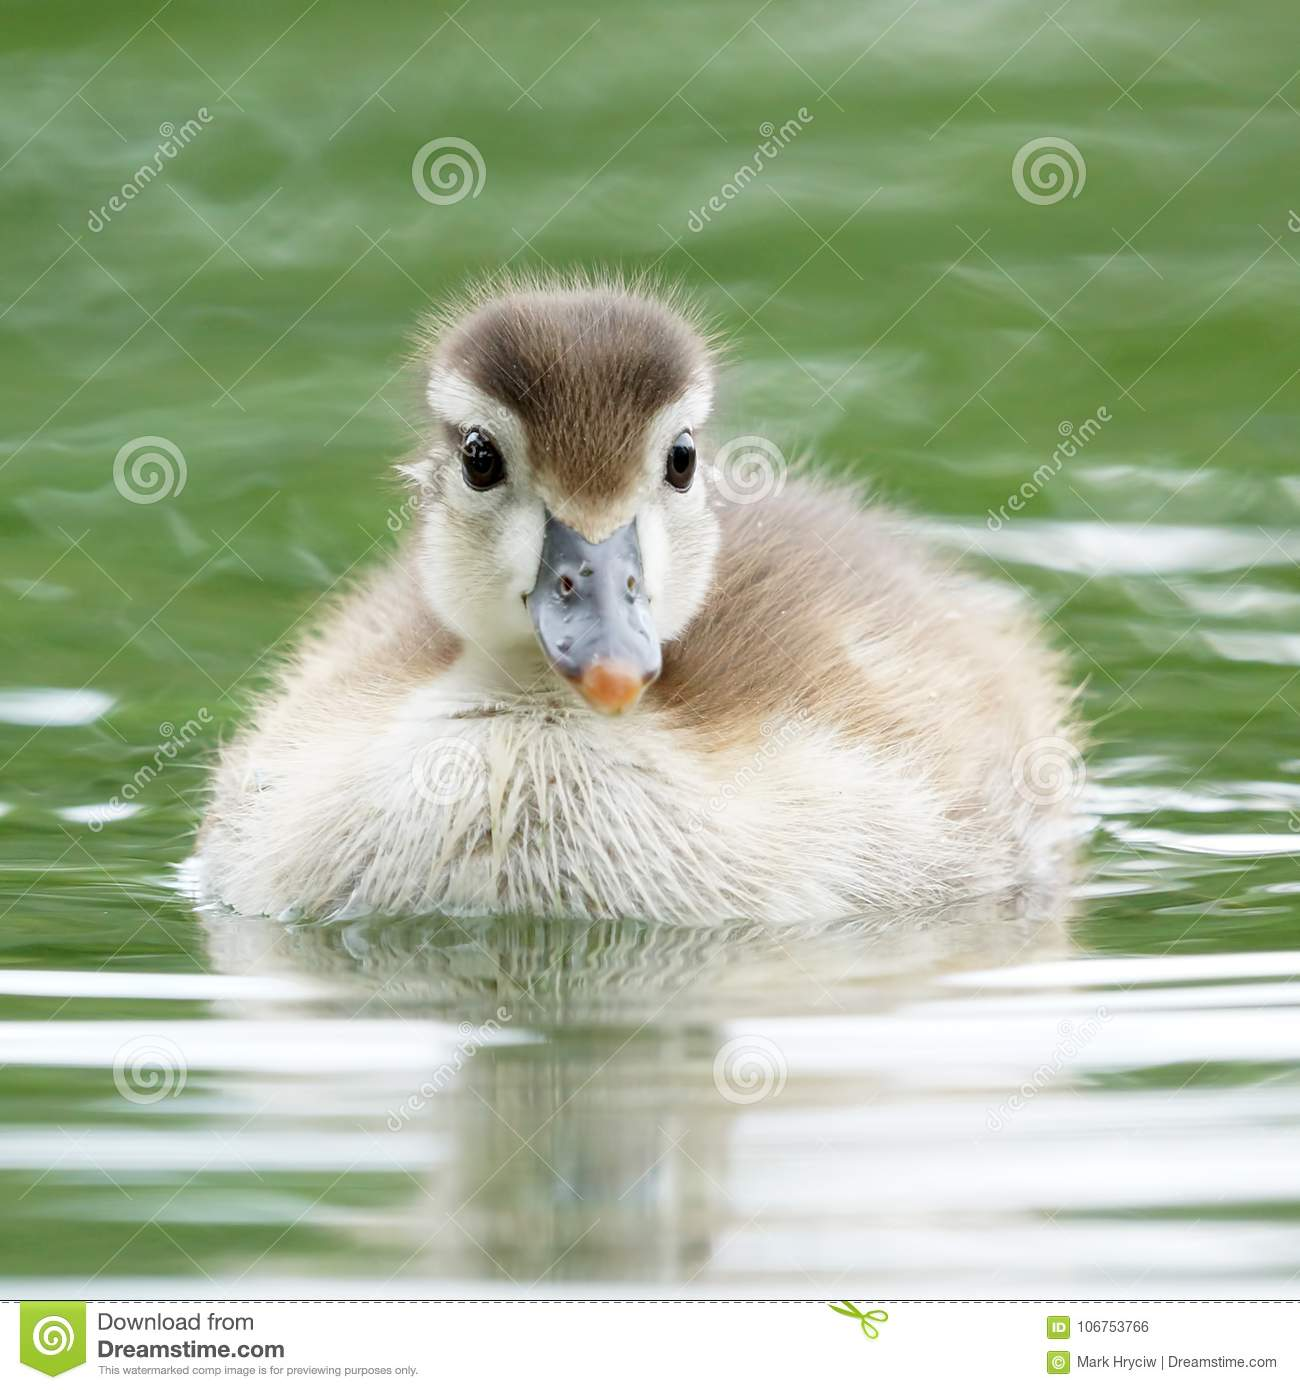 Baby Wood Duckling Swimming in a Pond